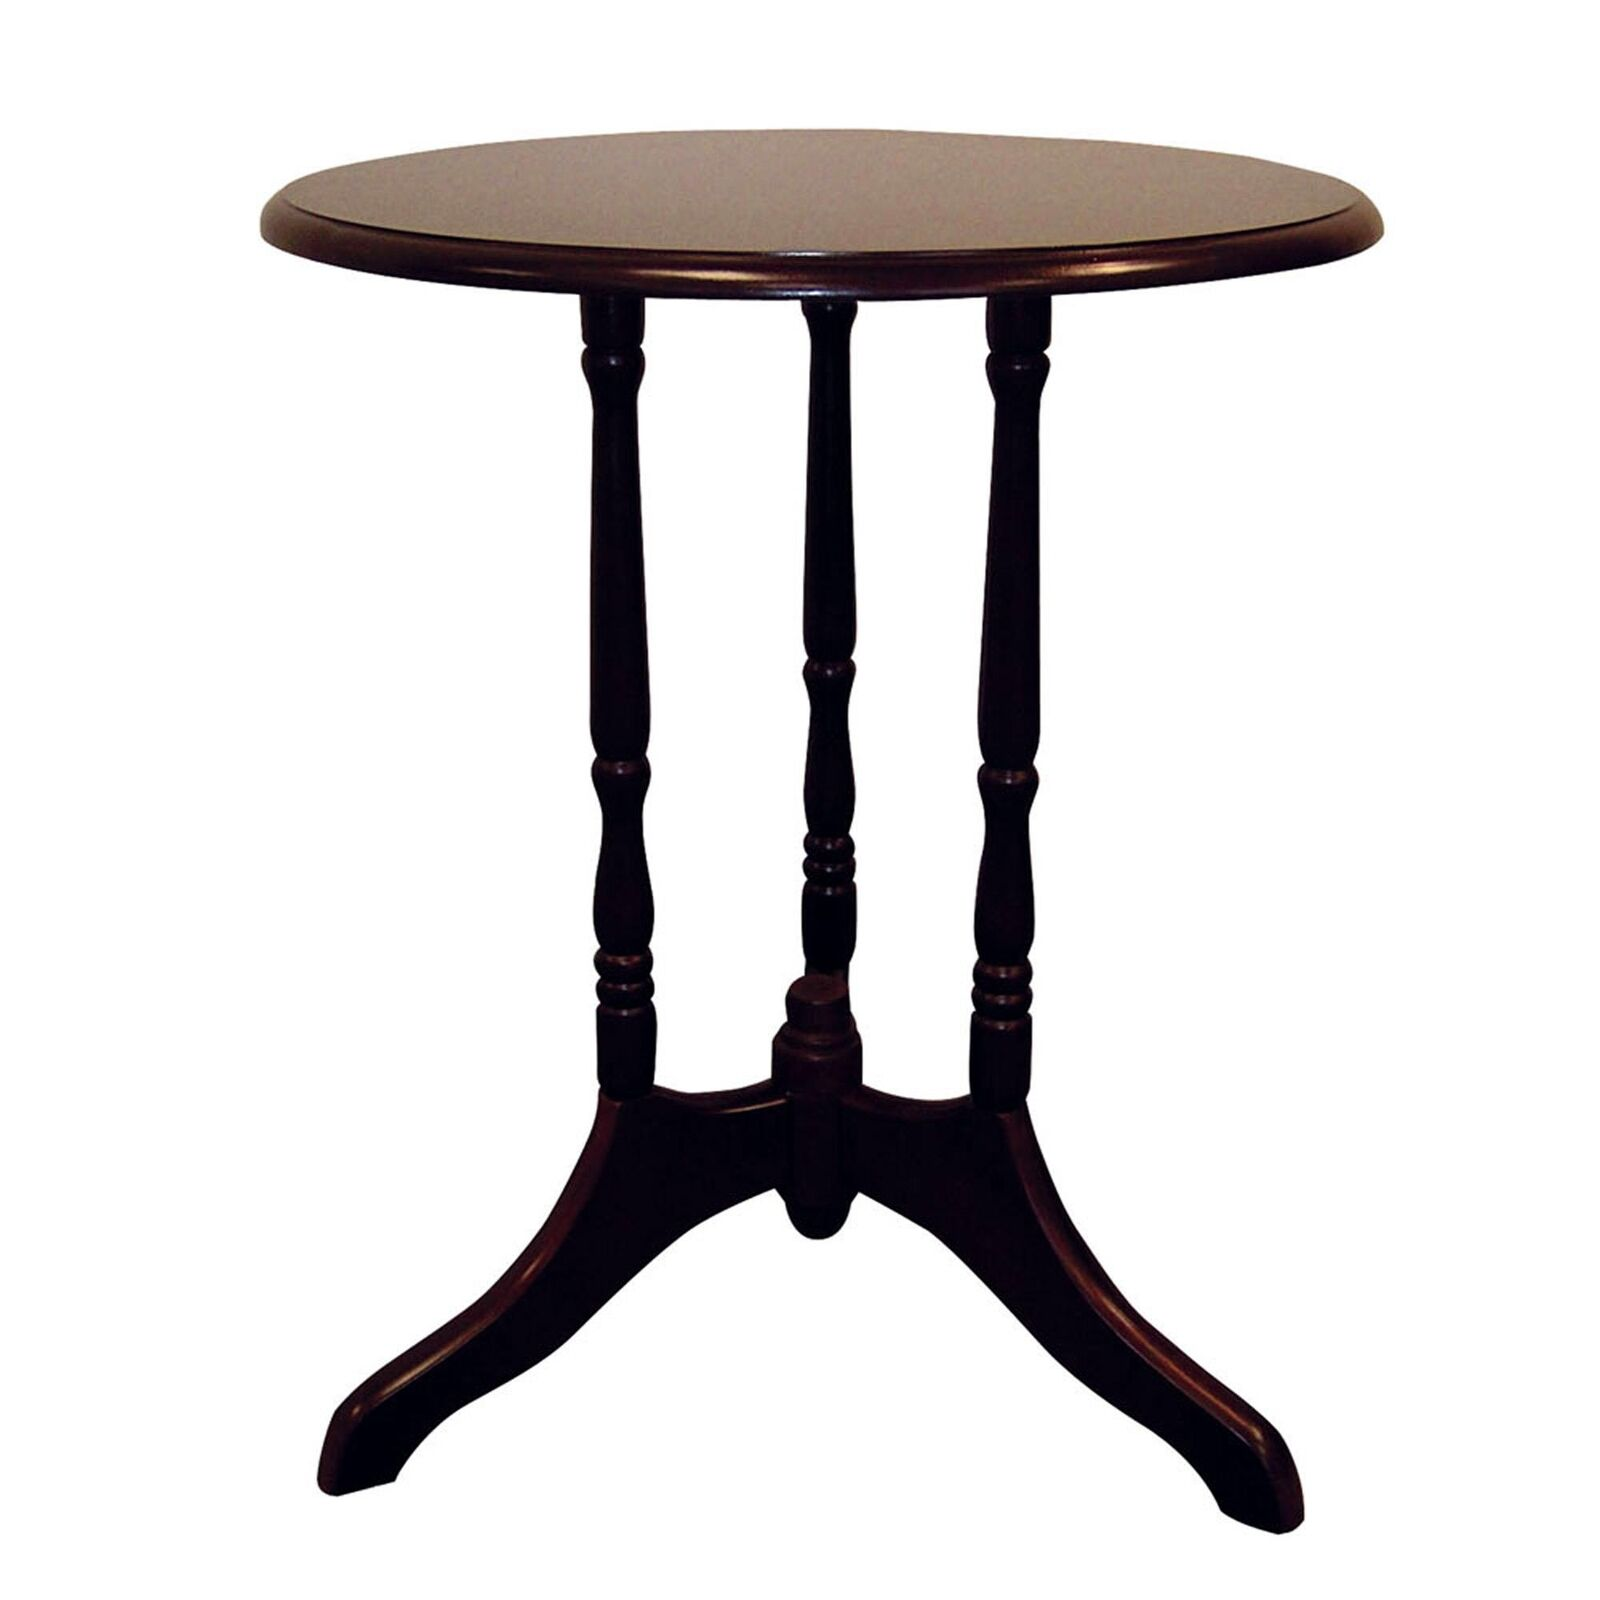 round end table tripod style base cherry finish details about mission night tables speakers magnolia home theater furniture mirrored bedroom set farm wood coffee arch glass macys